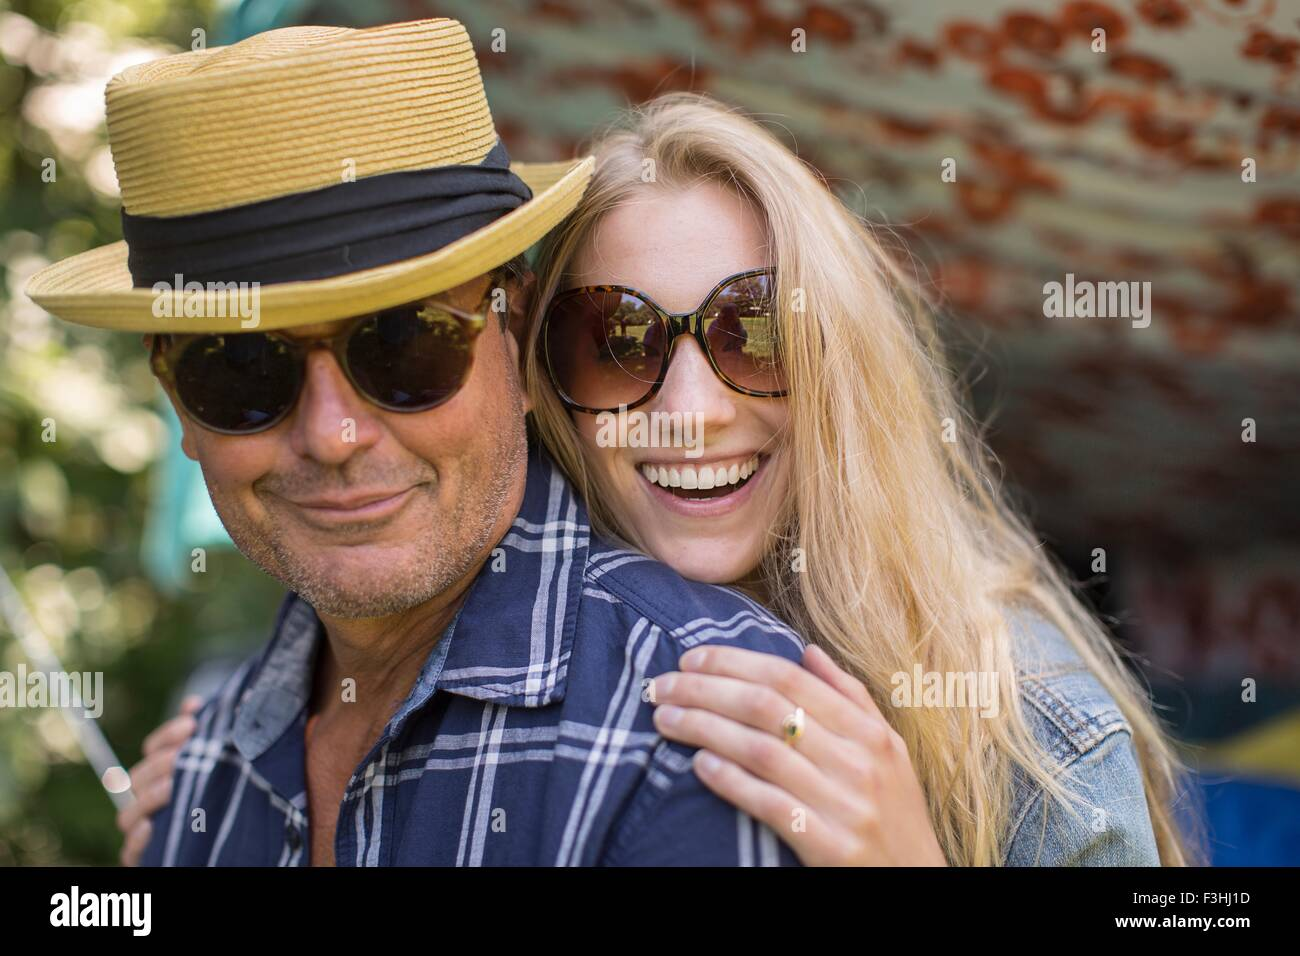 Portrait of mature man and girlfriend wearing sunglasses - Stock Image